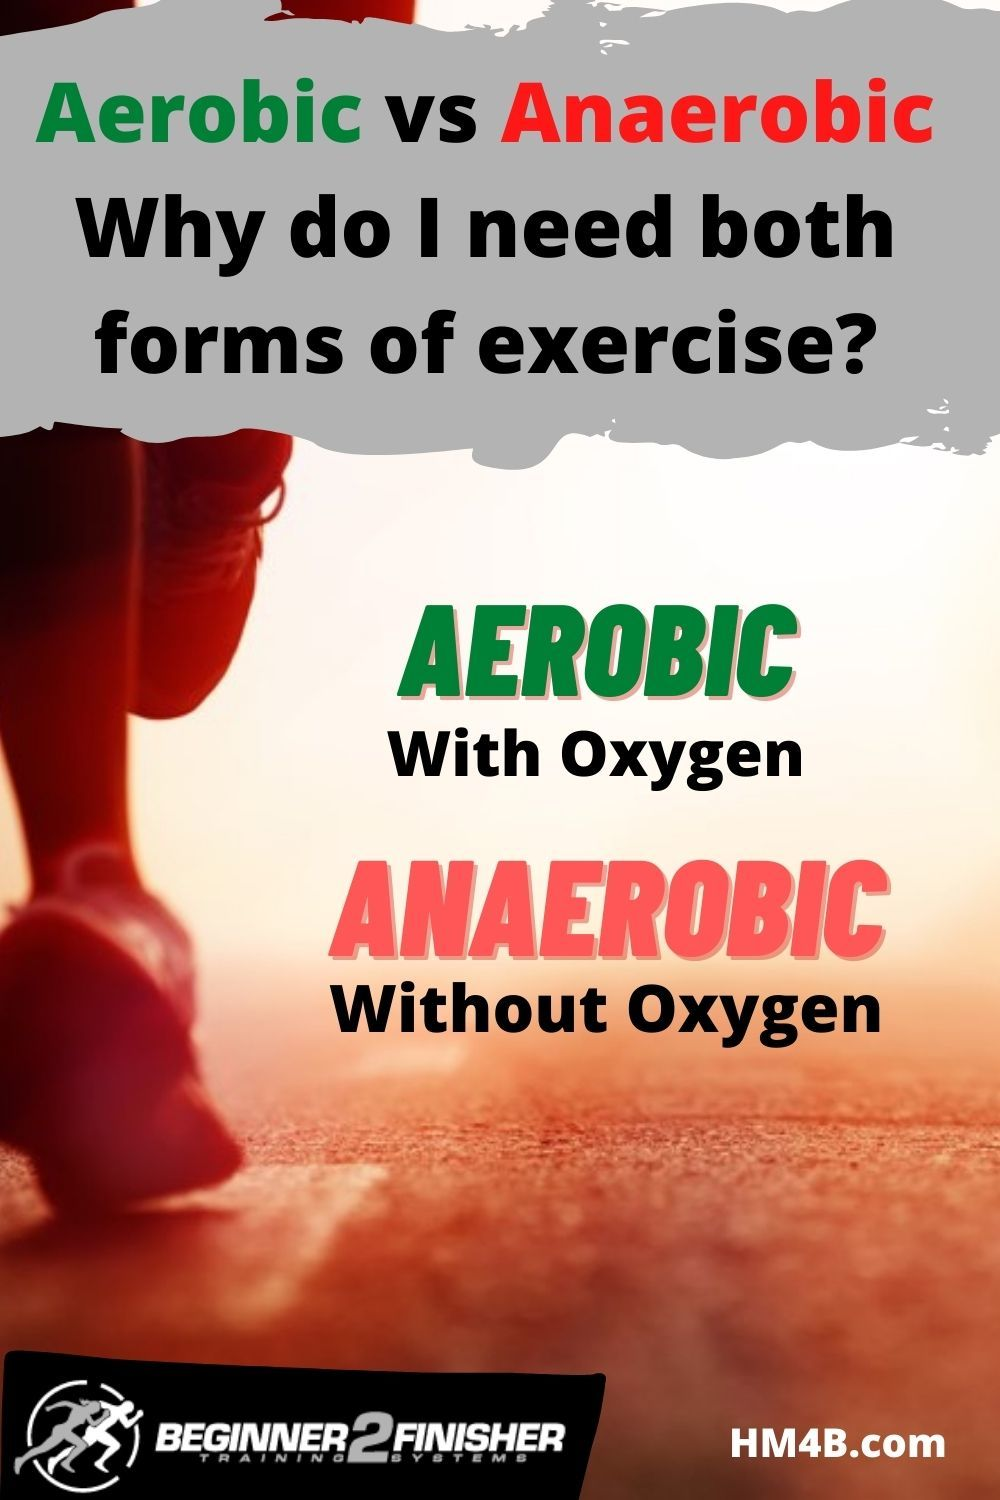 Aerobic vs Anaerobic - Which Exercise Type For Long Distance Running?